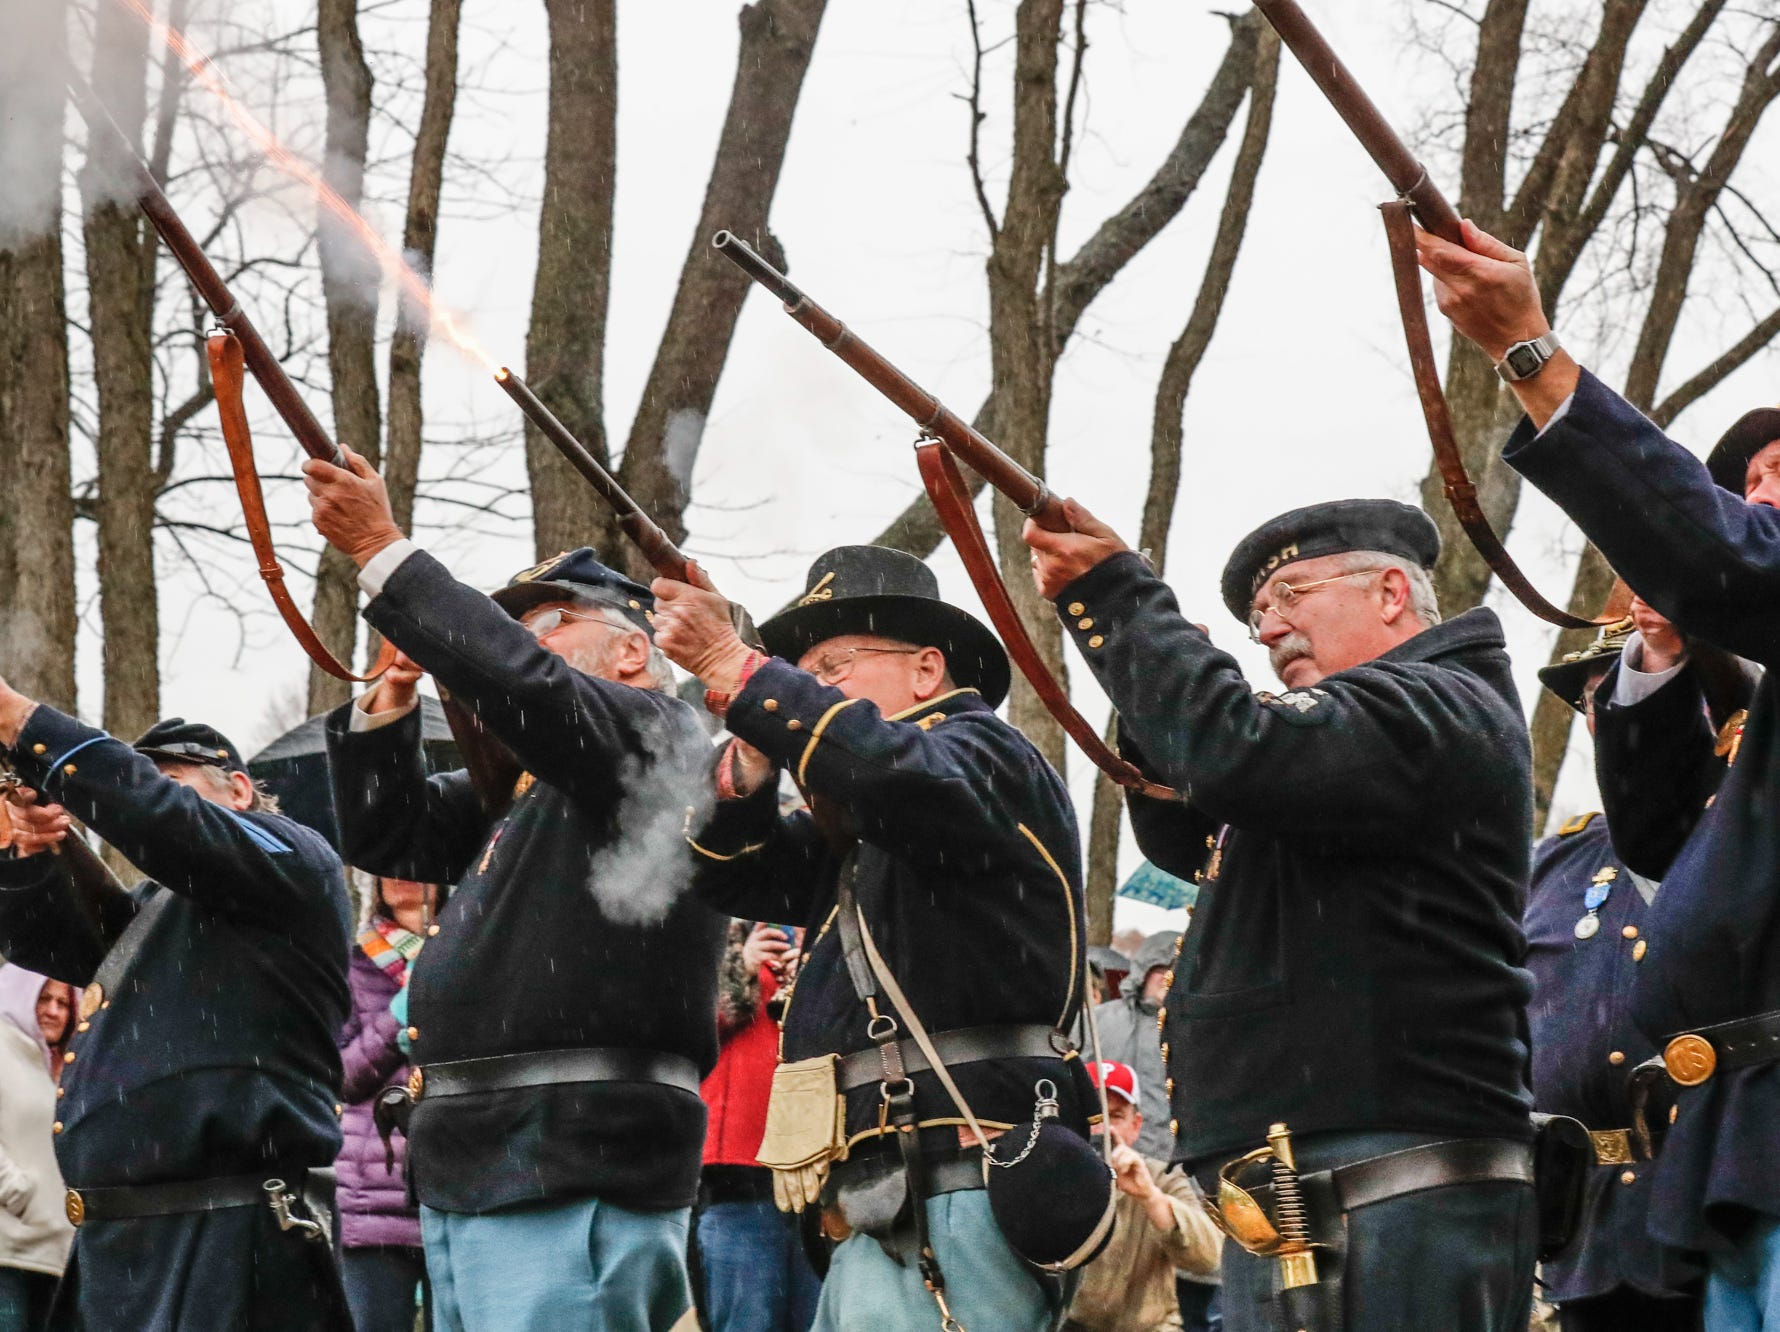 Sons of the Union Veterans of the Civil War perform a twenty one gun salute during the Wreaths Across America wreath laying in remembrance of fallen military heroes at Crown Hill Cemetery on Saturday, Dec. 2018.